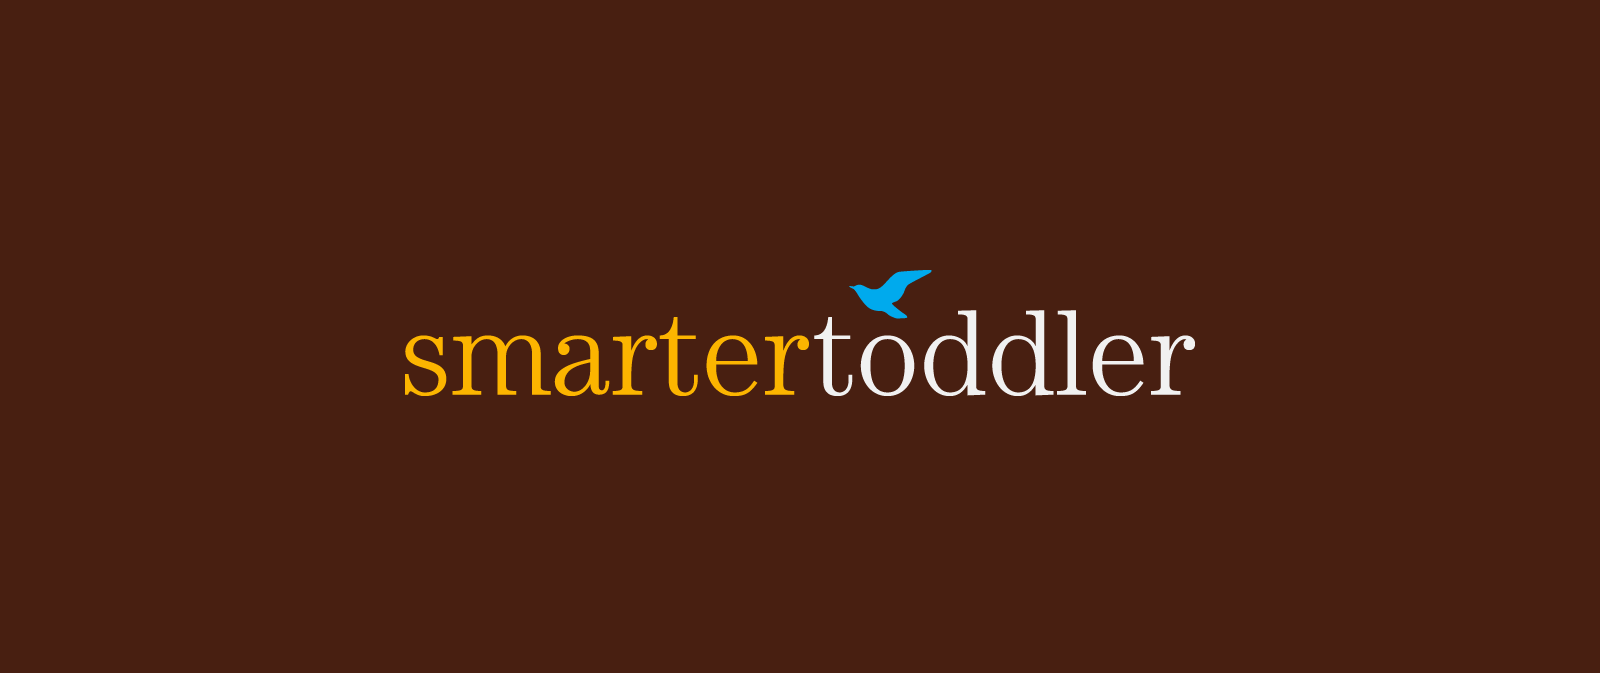 Brand Identity for Smarter Toddler